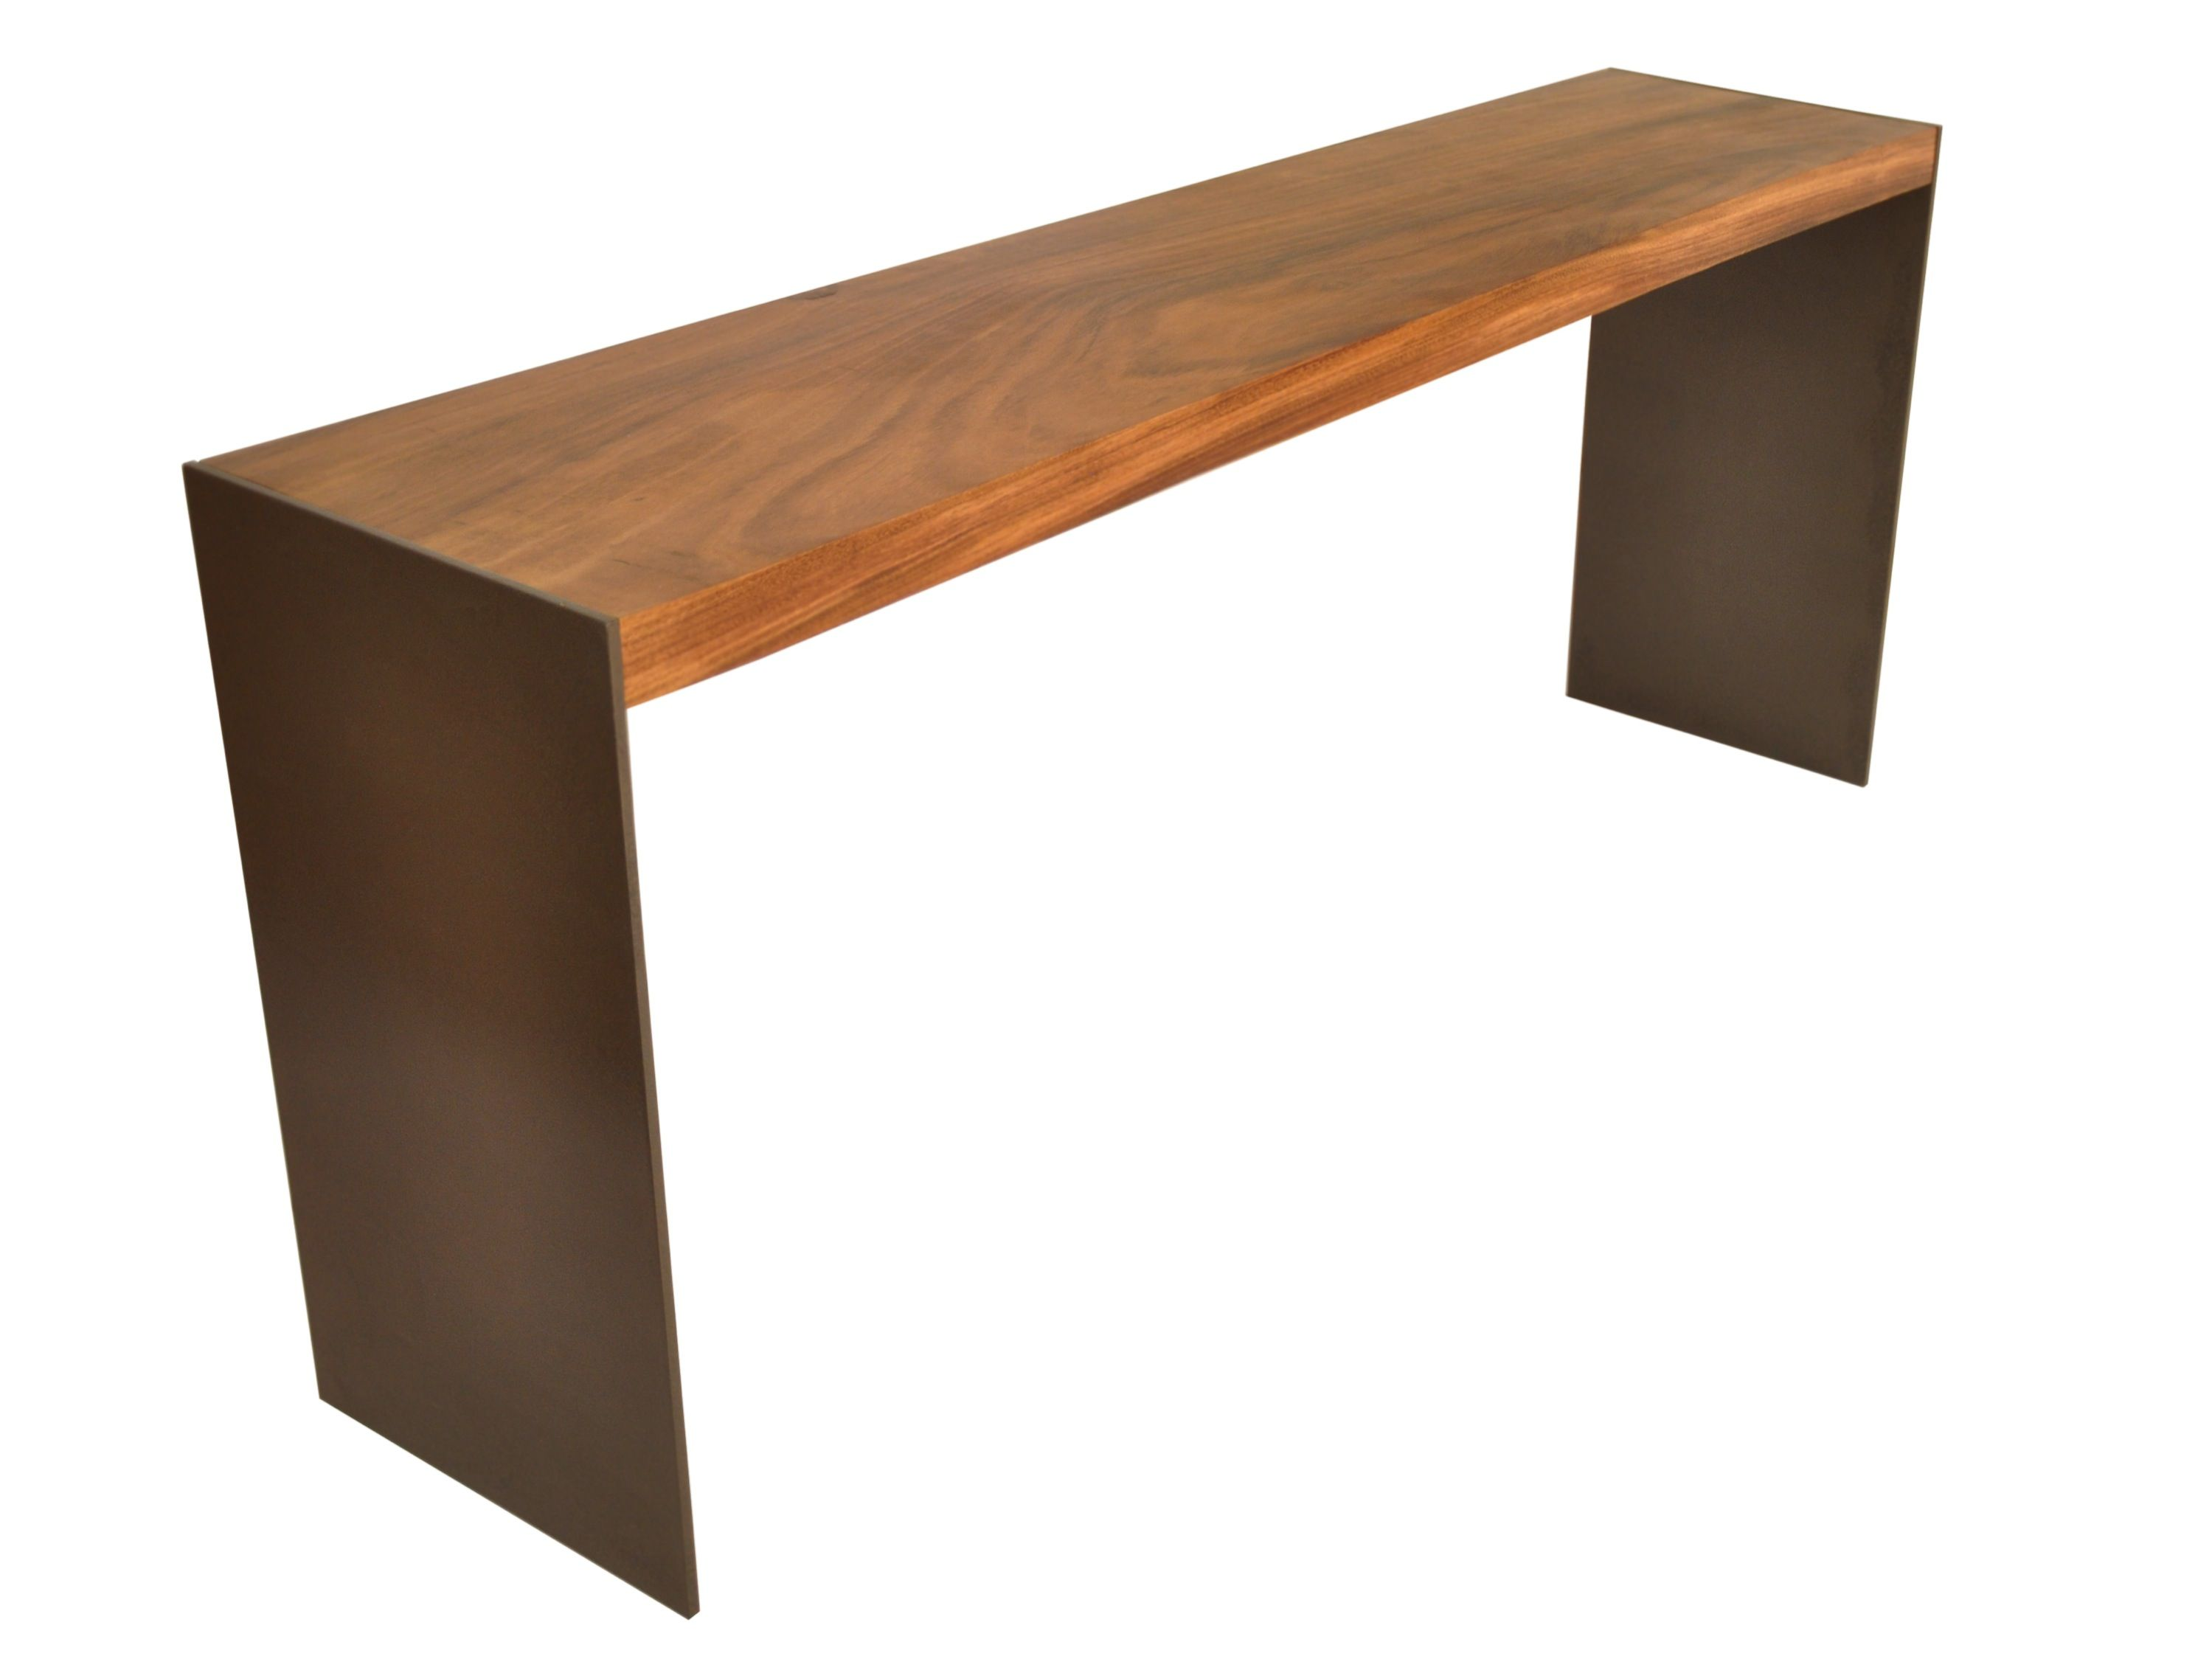 This Contemporary Console Table By Rotsen Furniture Is A Display Of Beauty  And Simplicity. The Straight Cut Of The Solid Wood Top Creates A Contrast  With ...